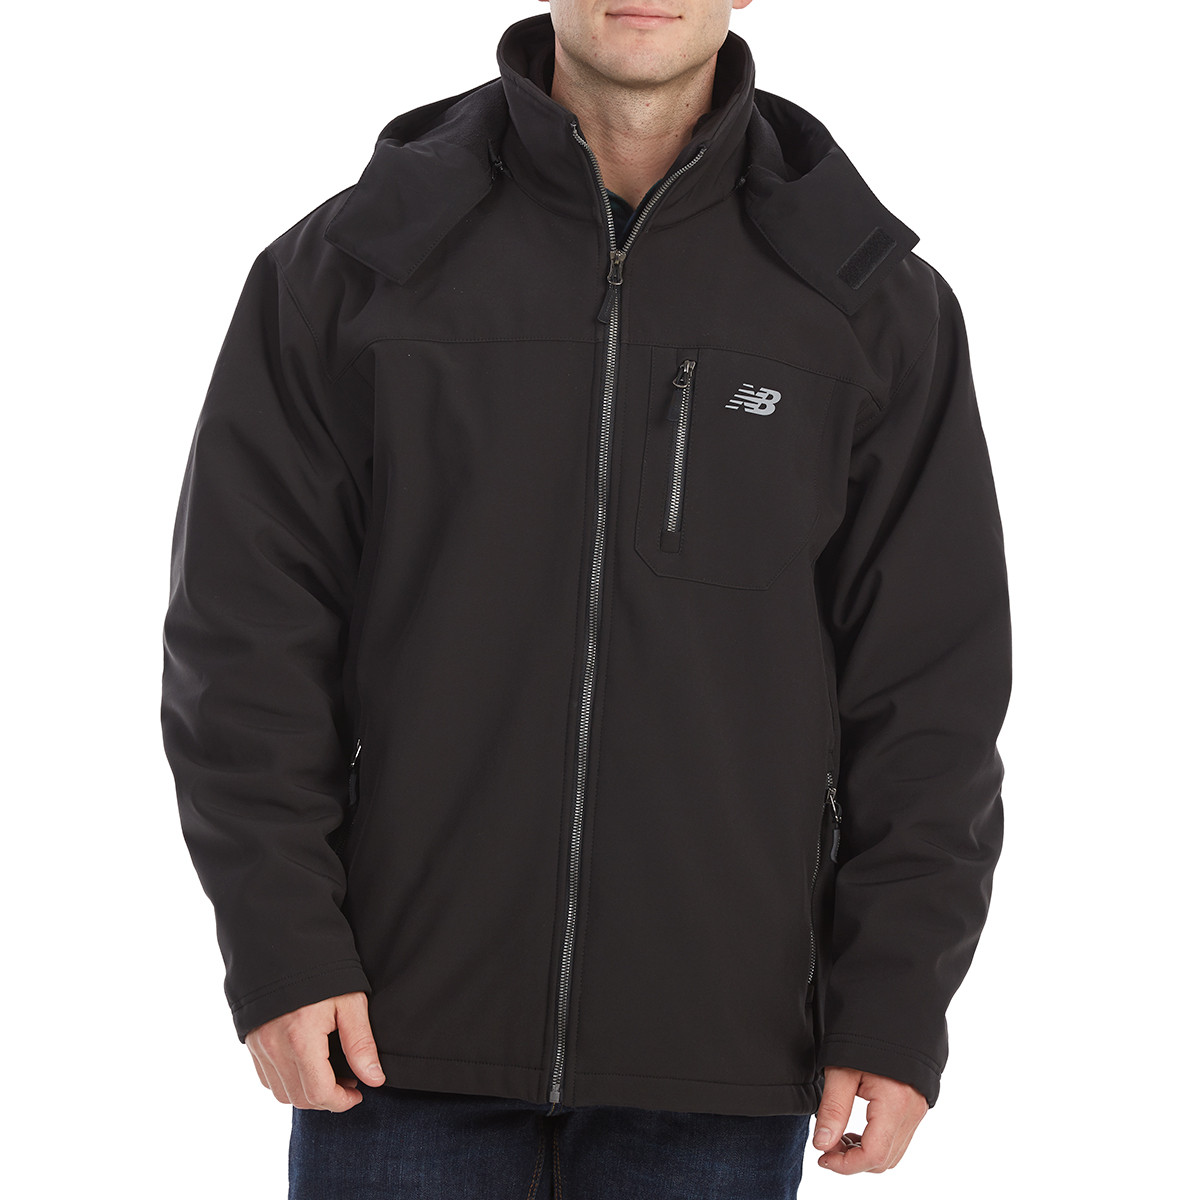 New Balance Men's Soft Shell Systems Jacket With Zip-Out Puffer - Black, L